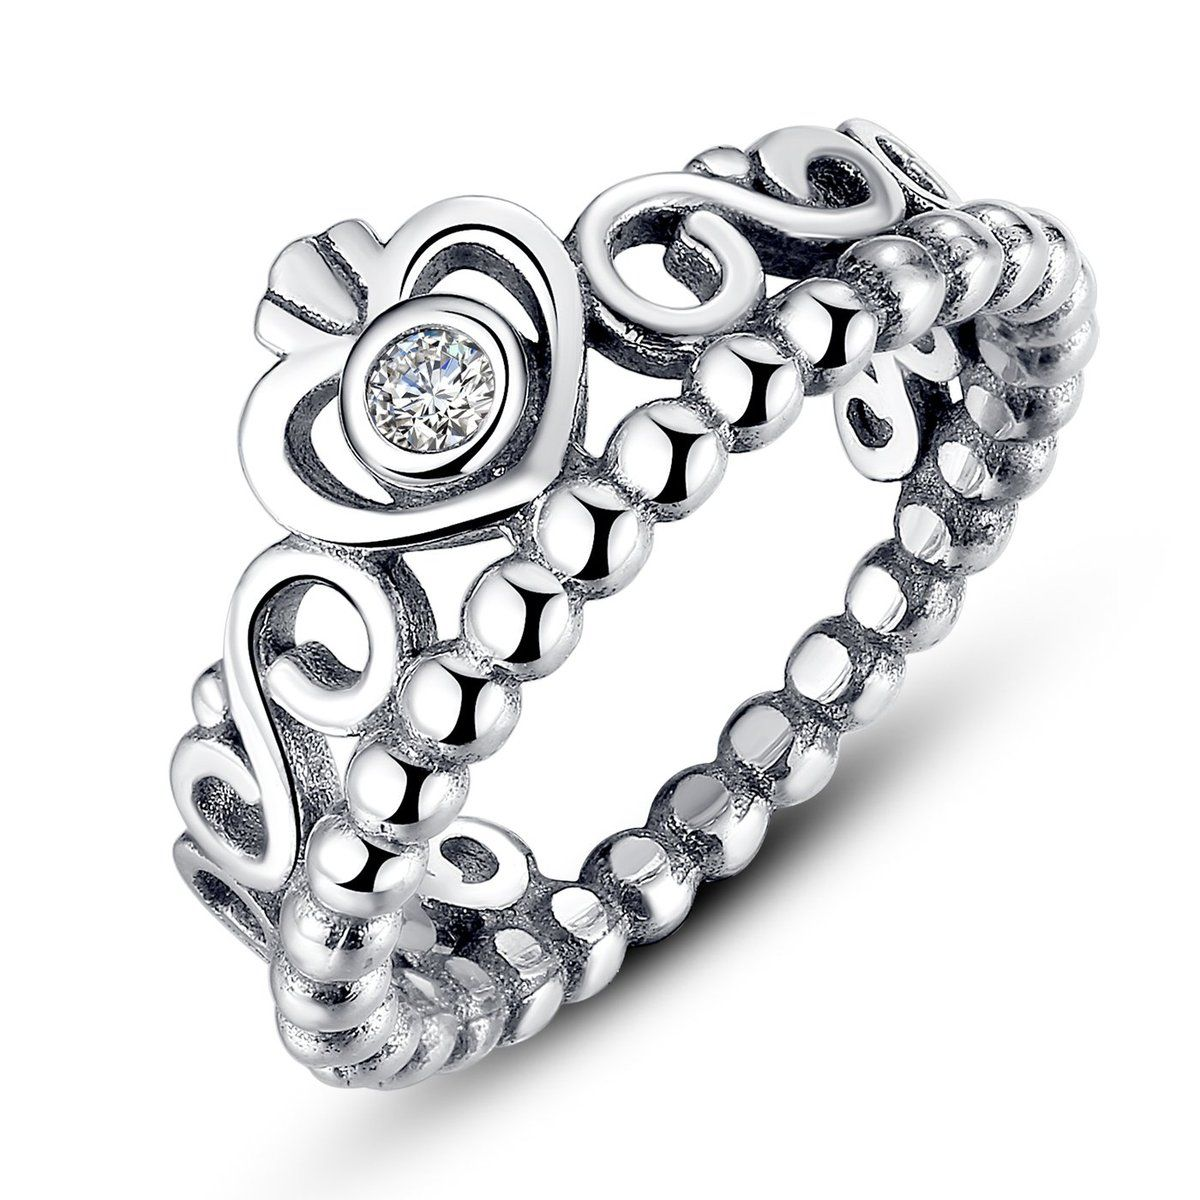 2c17e23bf 925 Sterling Silver My Princess Queen Crown Stackable Ring with Clear Cubic  Zirconia Szie 6-9 [PA7110] - $17.98 : moonbaye.com